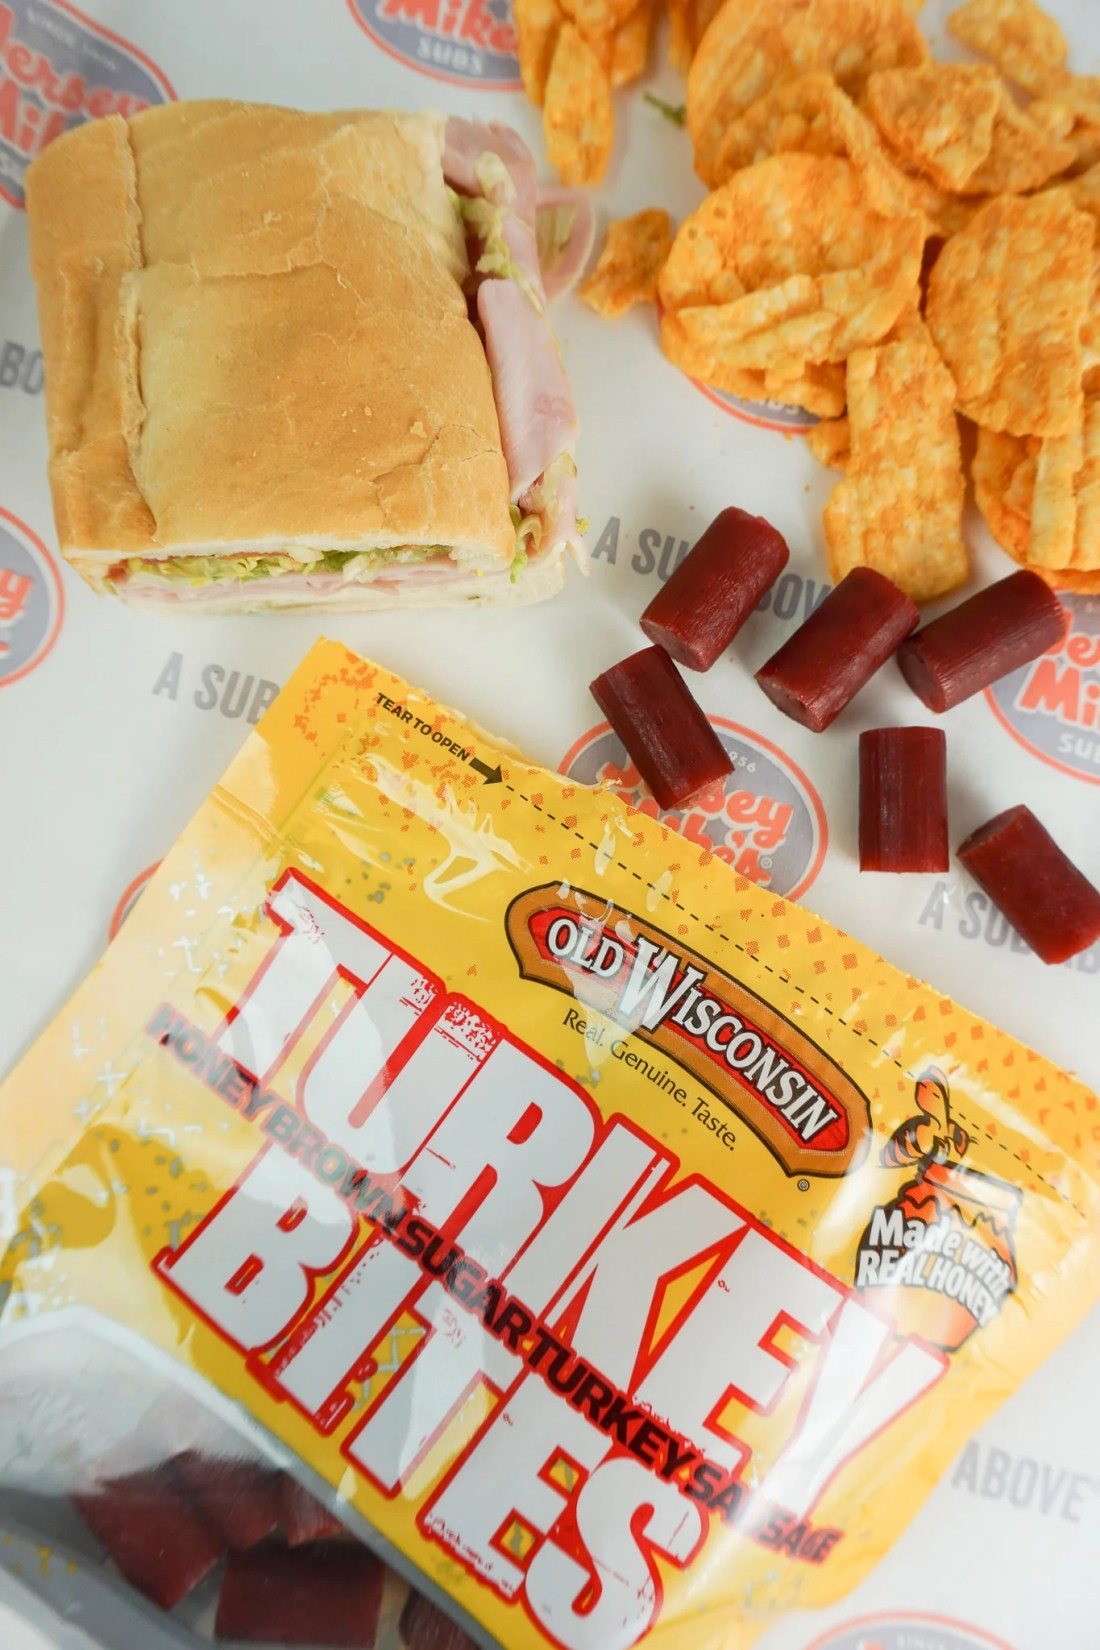 Old Wisconsin Turkey Bites Open Sub Closeup. Stop stressing about what everyone will be eating on the Big Game Day. Take advantage of some awesome No-Cook Easy Game Day Snack Idea's on the blog now.